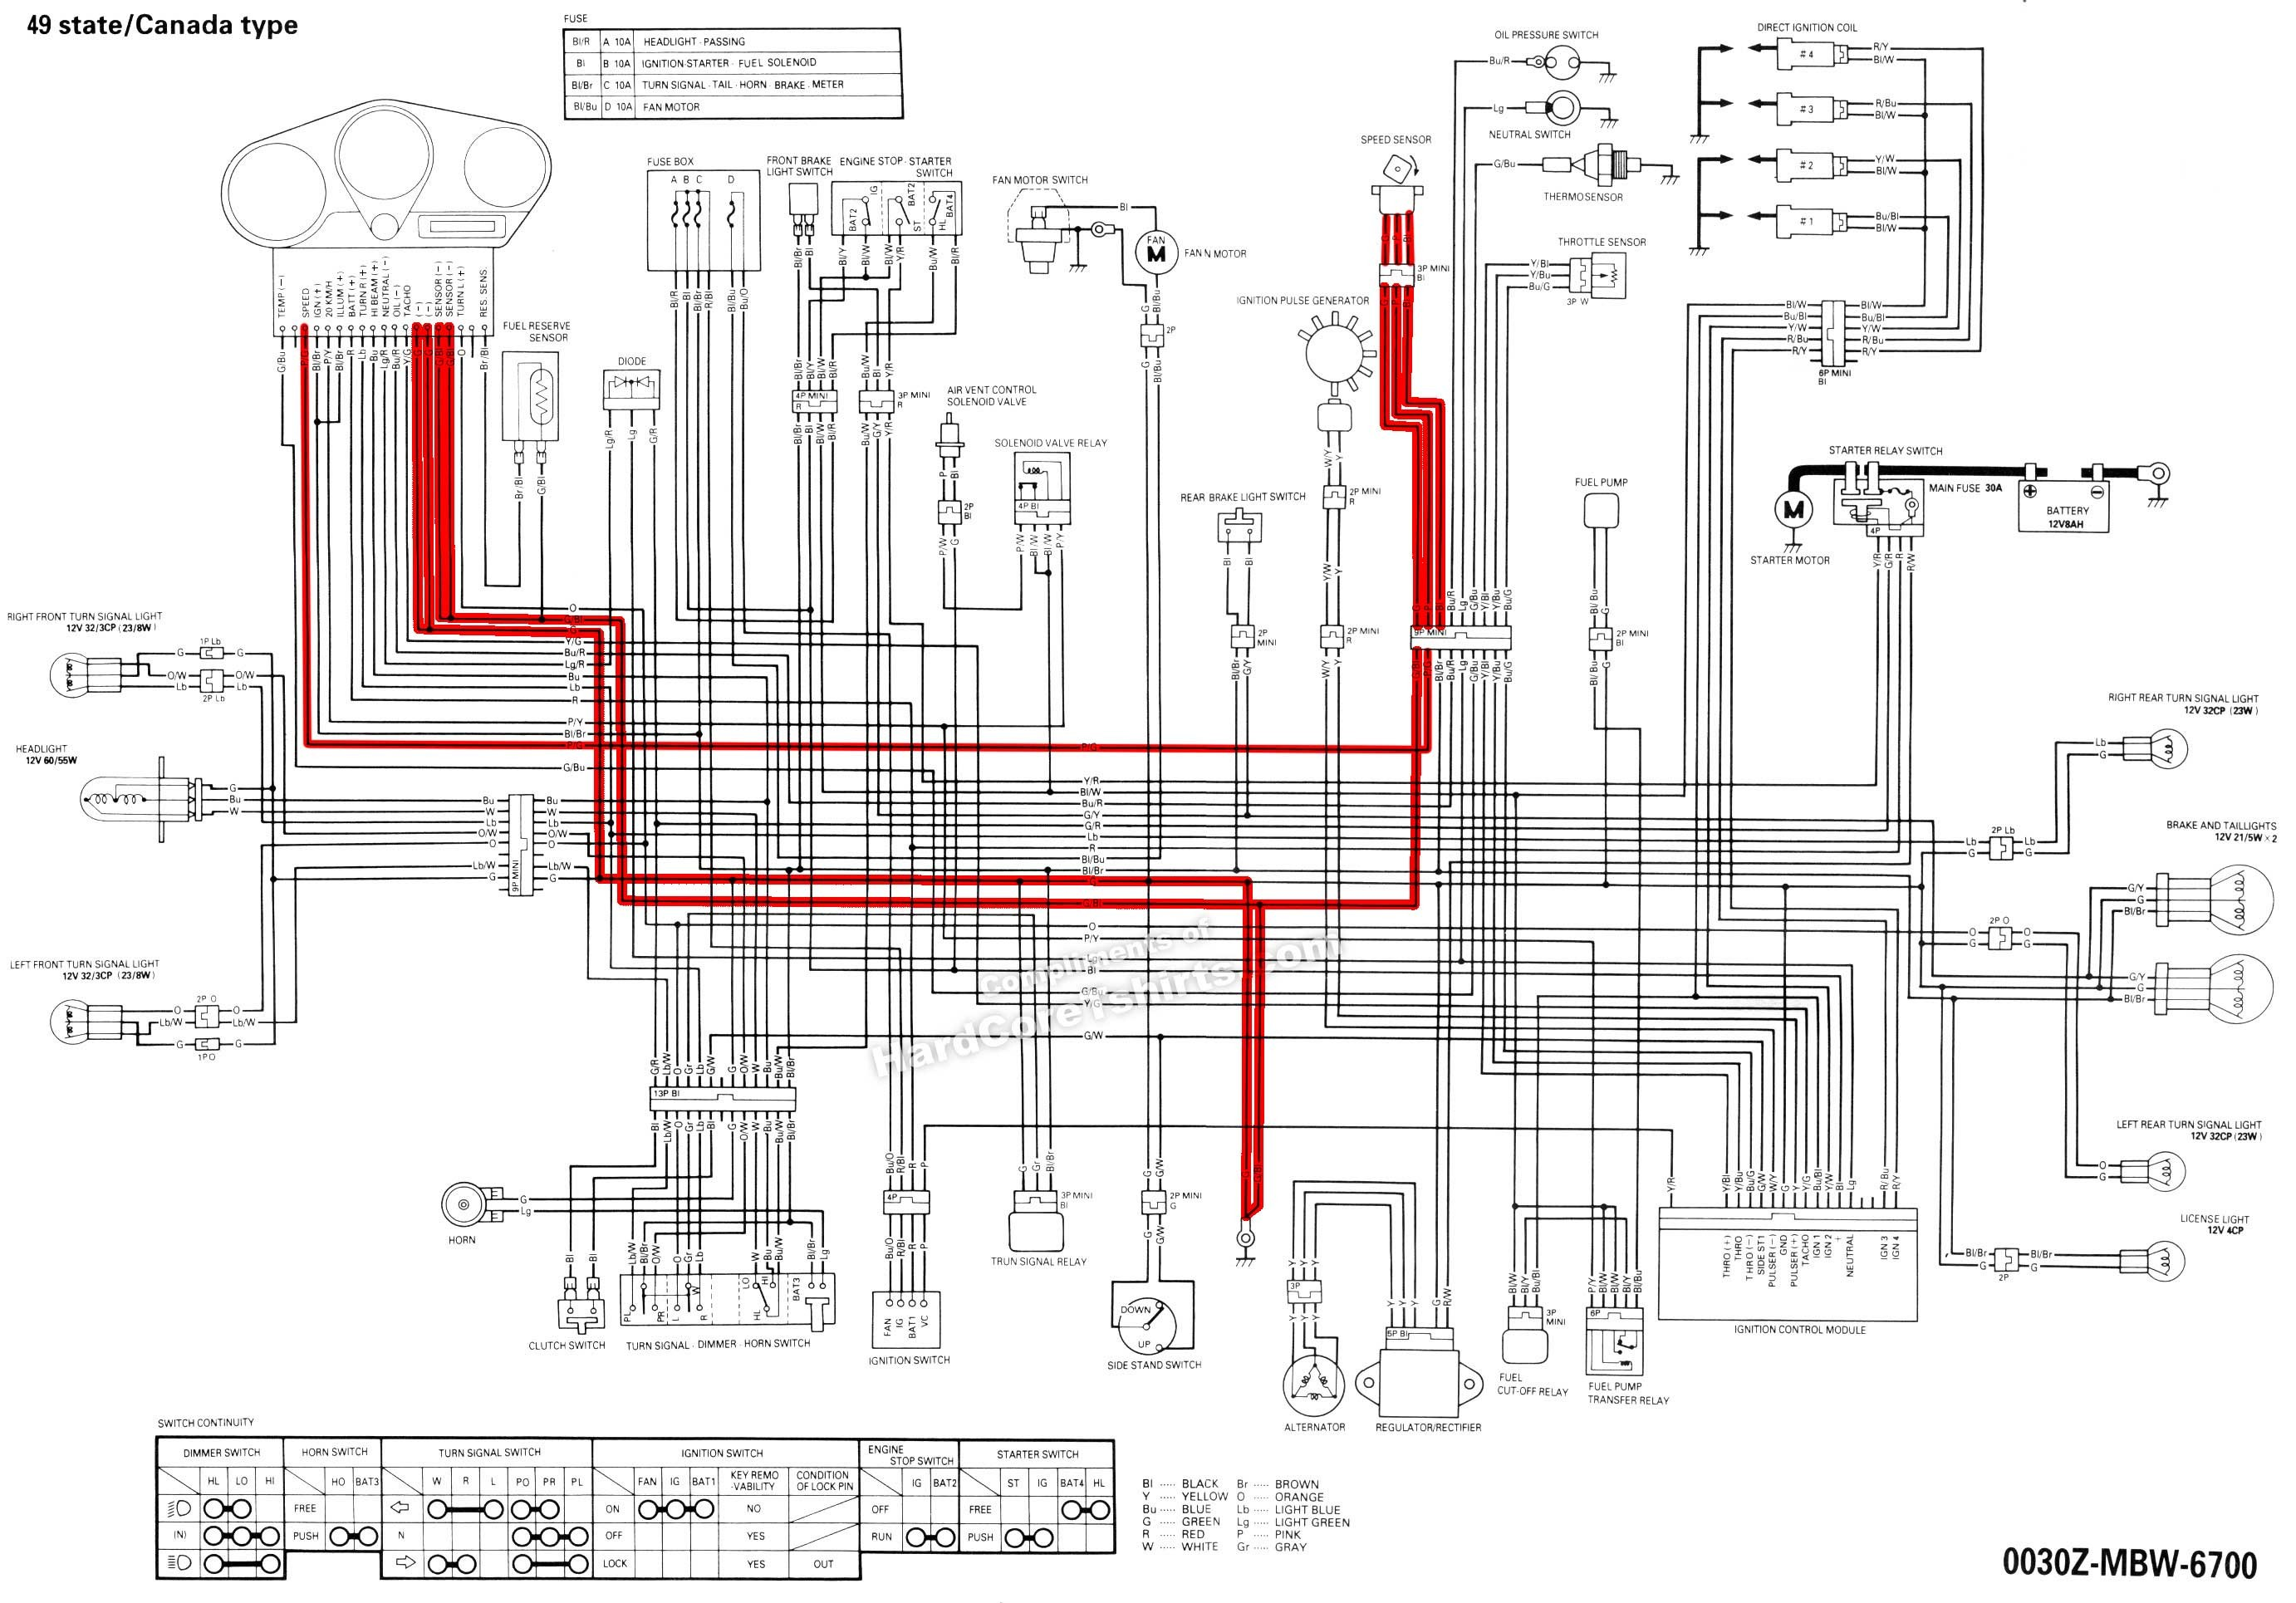 282b53 Honda Shadow Vlx 600 Wiring Diagram